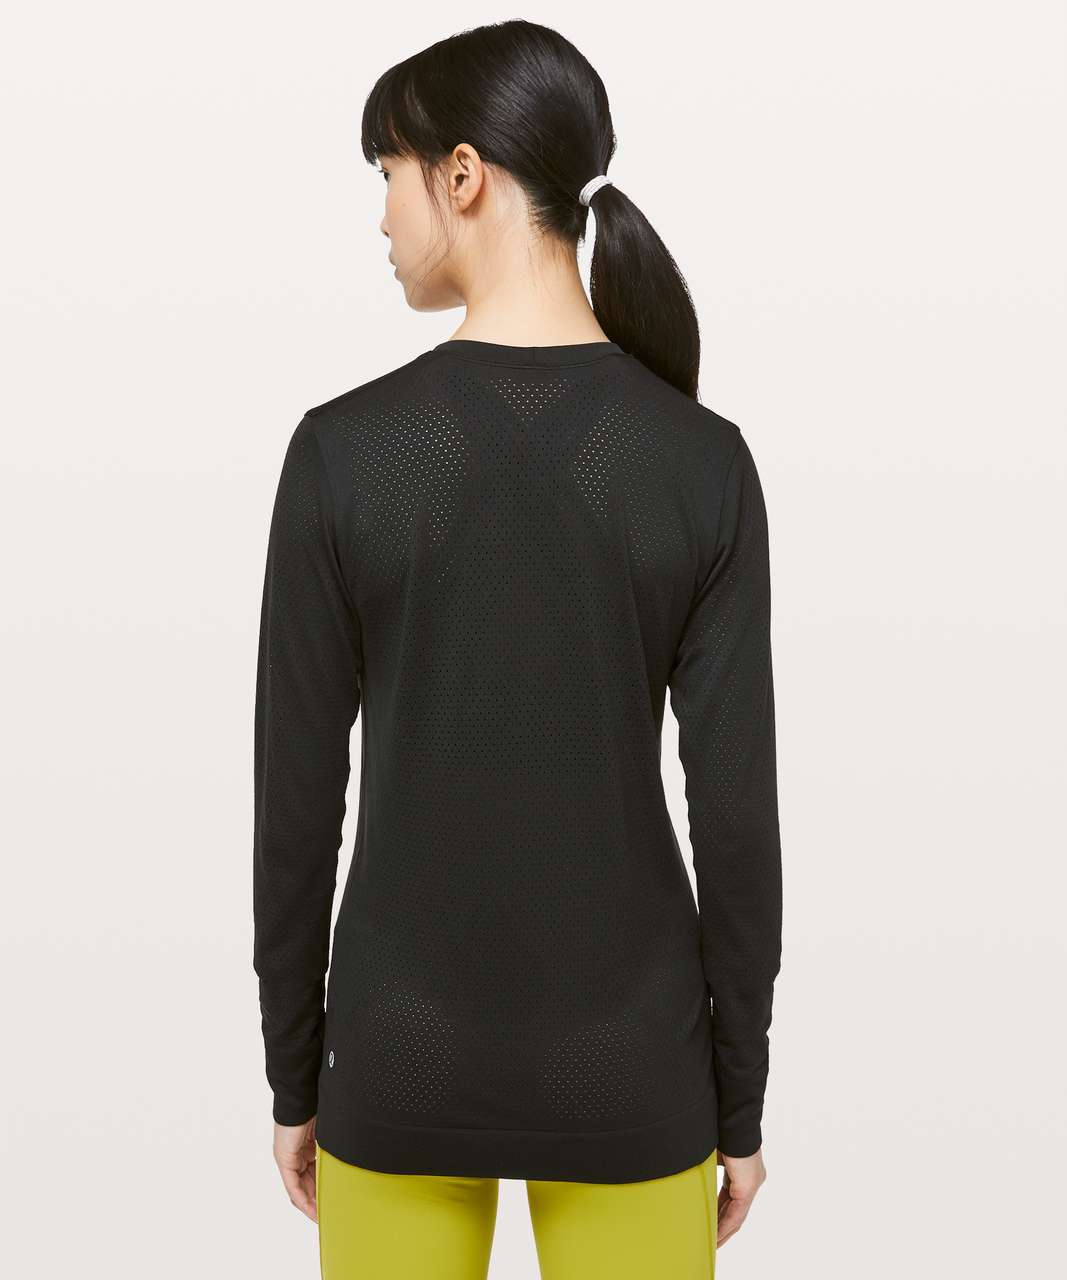 Lululemon Breeze By Long Sleeve *lululemon - Black / Black